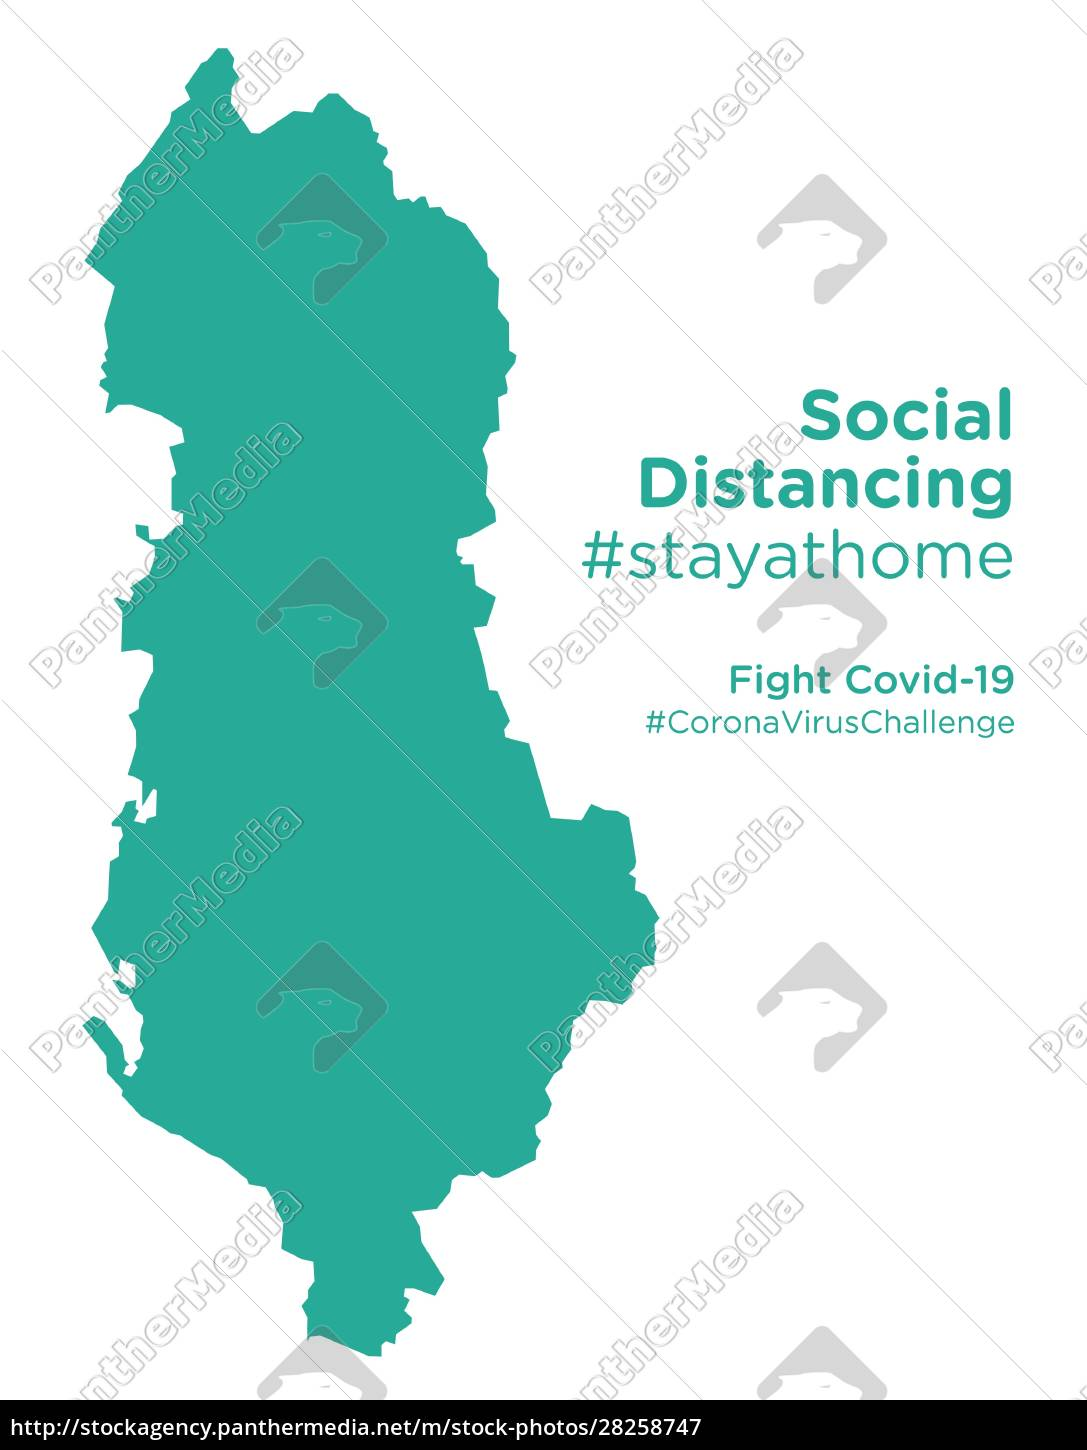 albania, map, with, social, distancing, #stayathome - 28258747